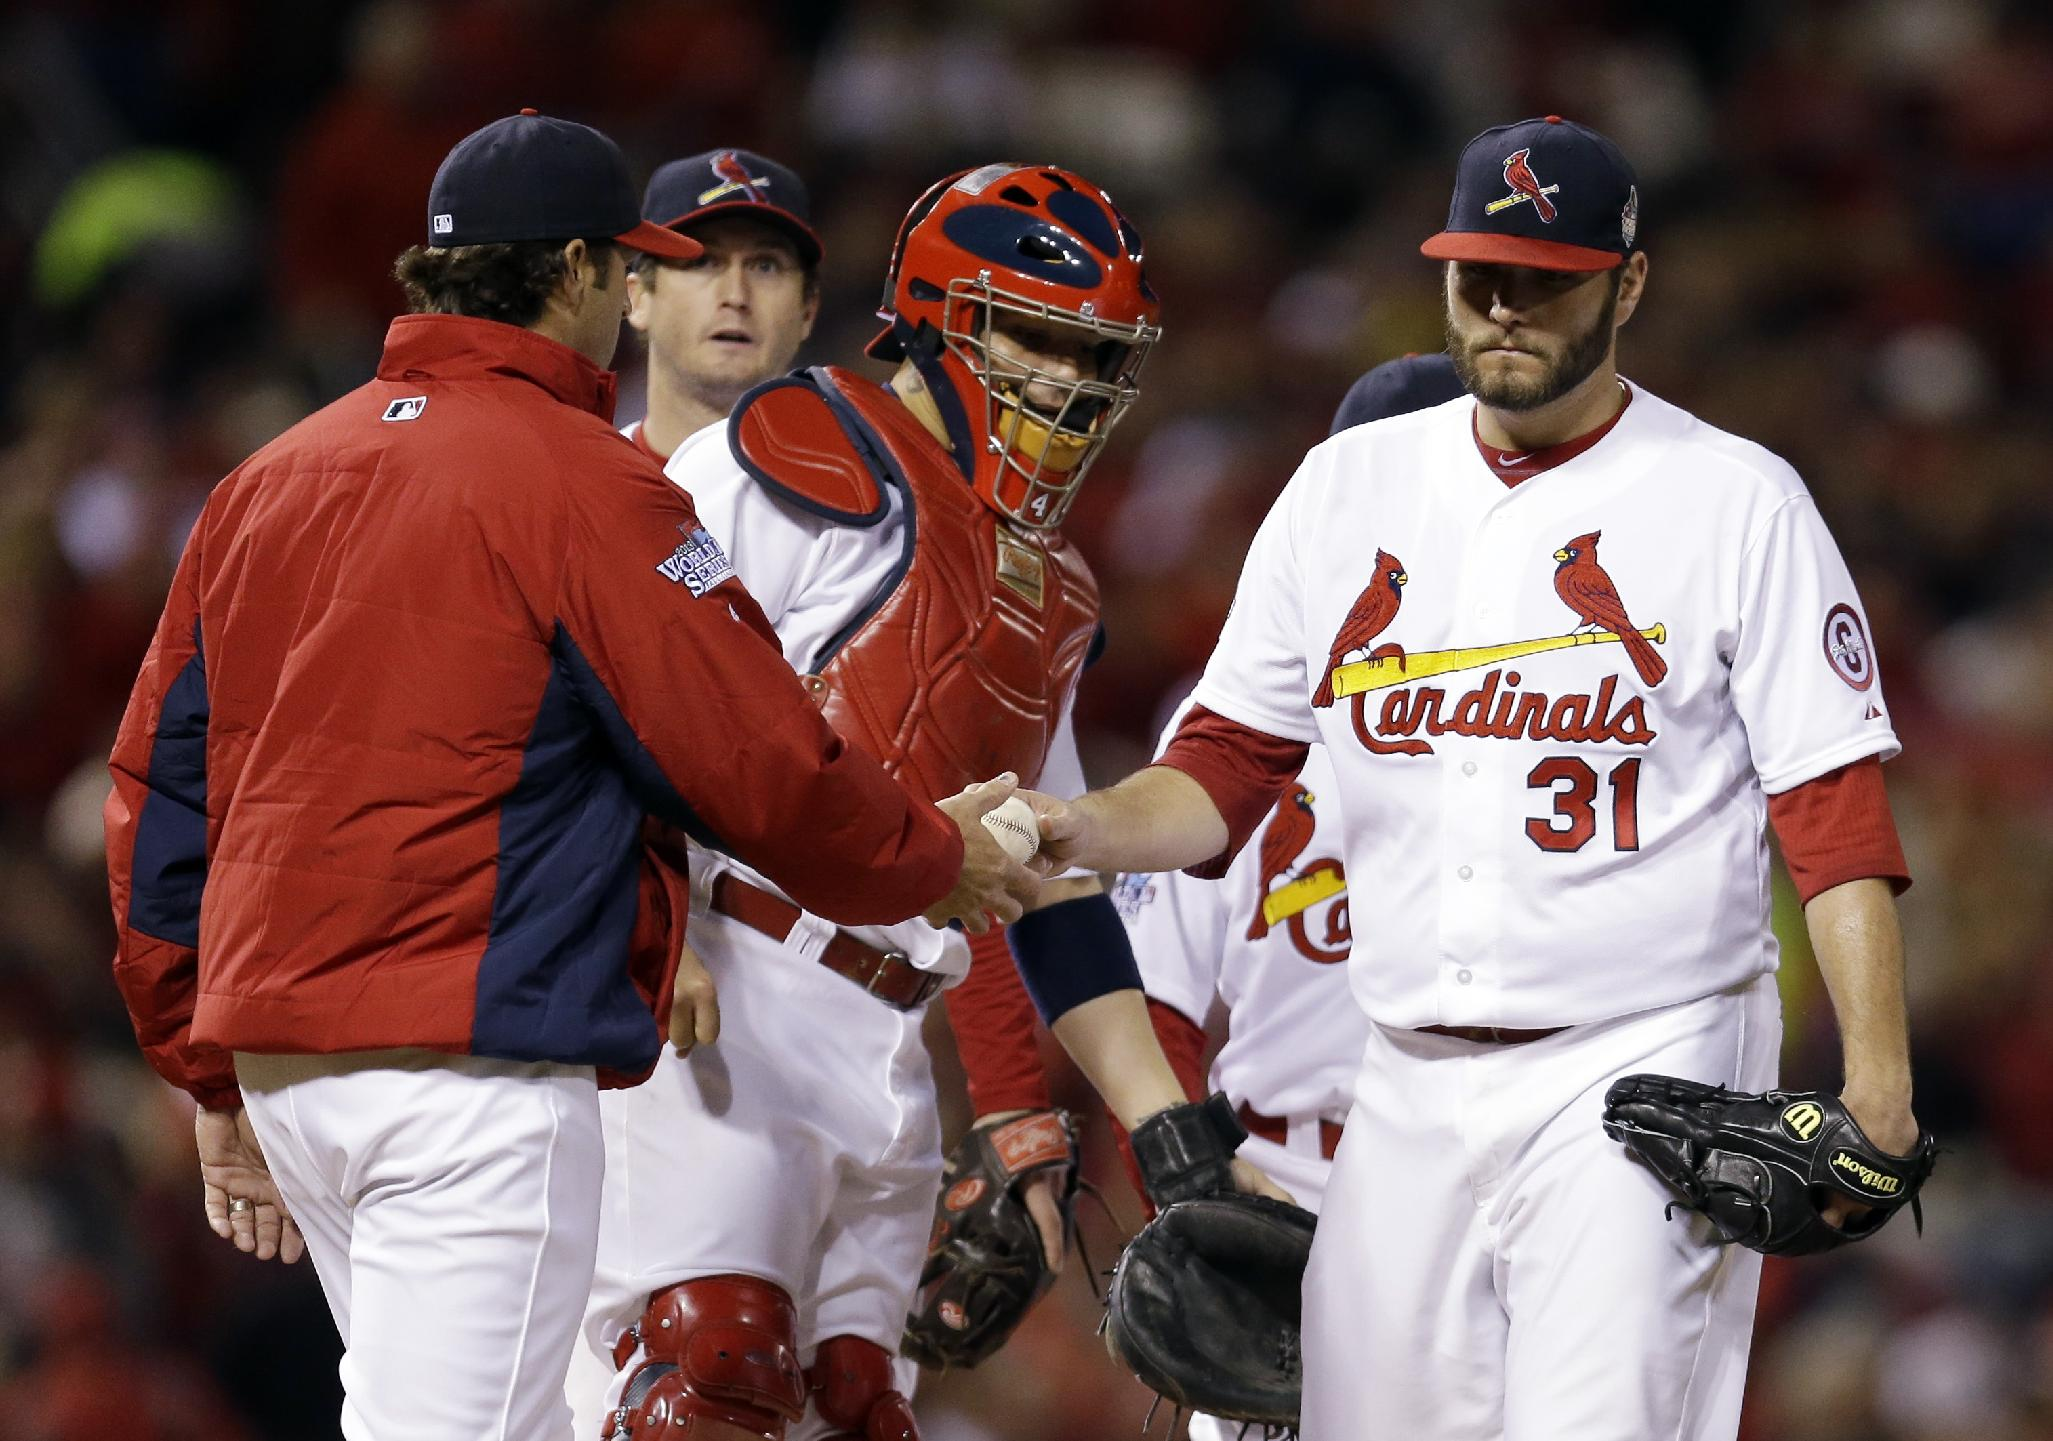 St. Louis Cardinals manager Mike Matheny takes starting pitcher Lance Lynn out of the game during the sixth inning of Game 4 of baseball's World Series against the Boston Red Sox Sunday, Oct. 27, 2013, in St. Louis